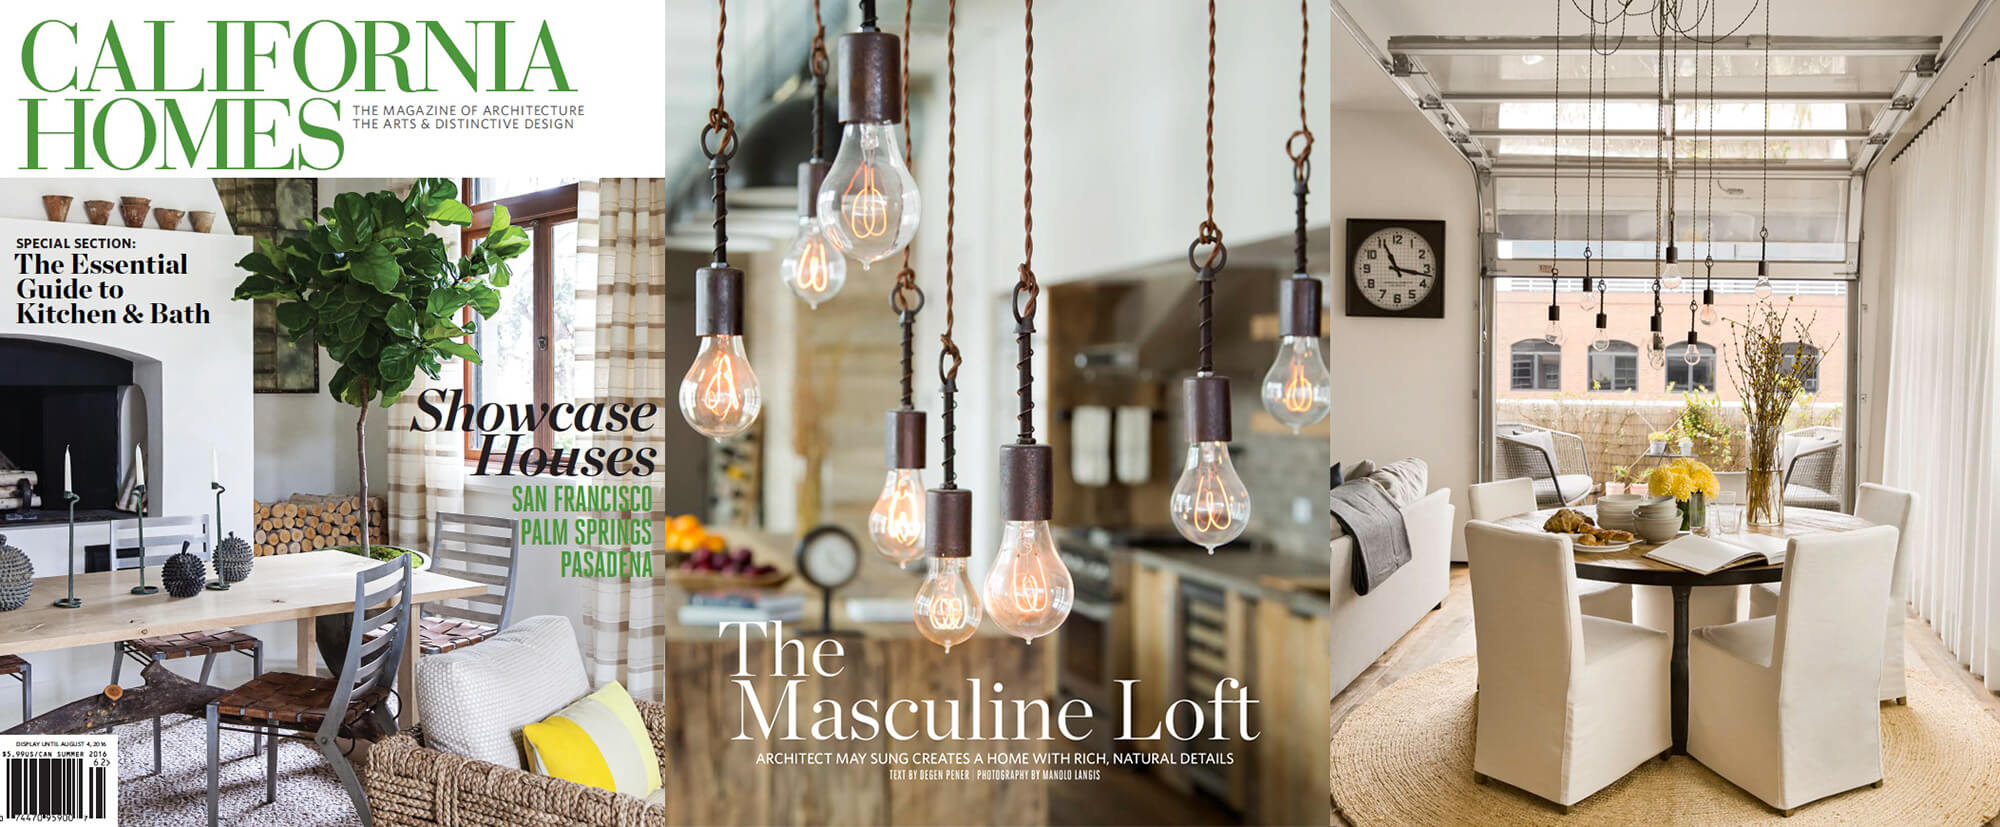 California Homes Summer 2016 - Featuring Flea Market Rx Spring Pendant Lights